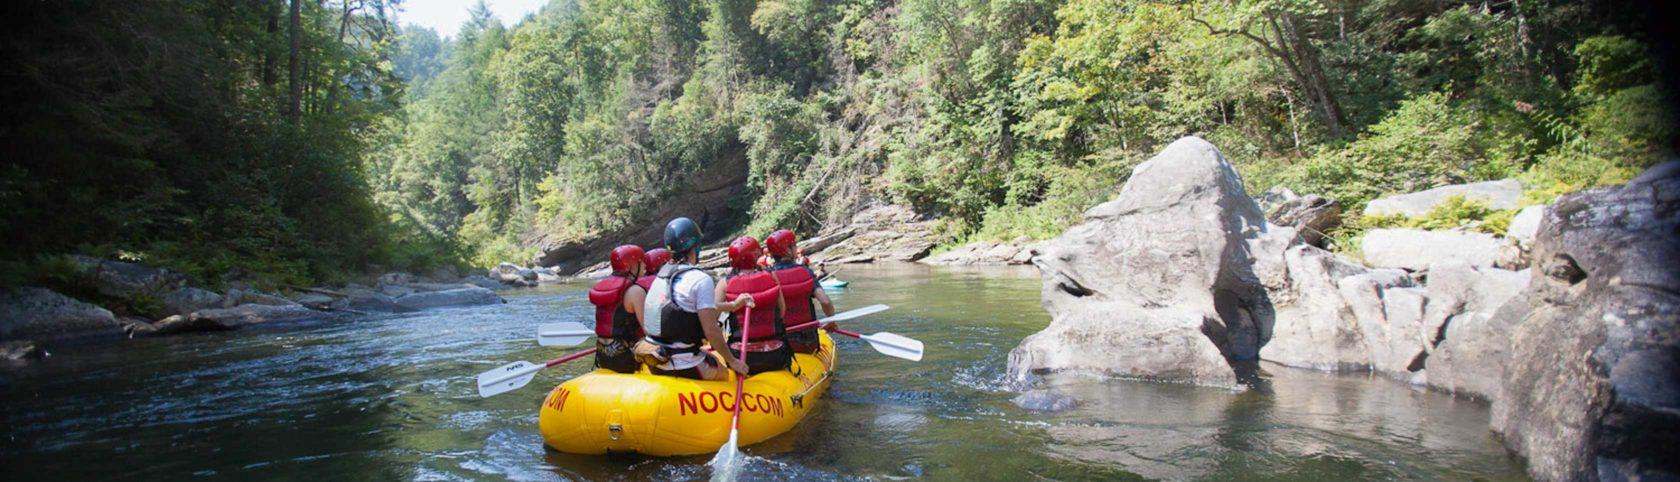 Rafters on the Chattooga River in south carolina